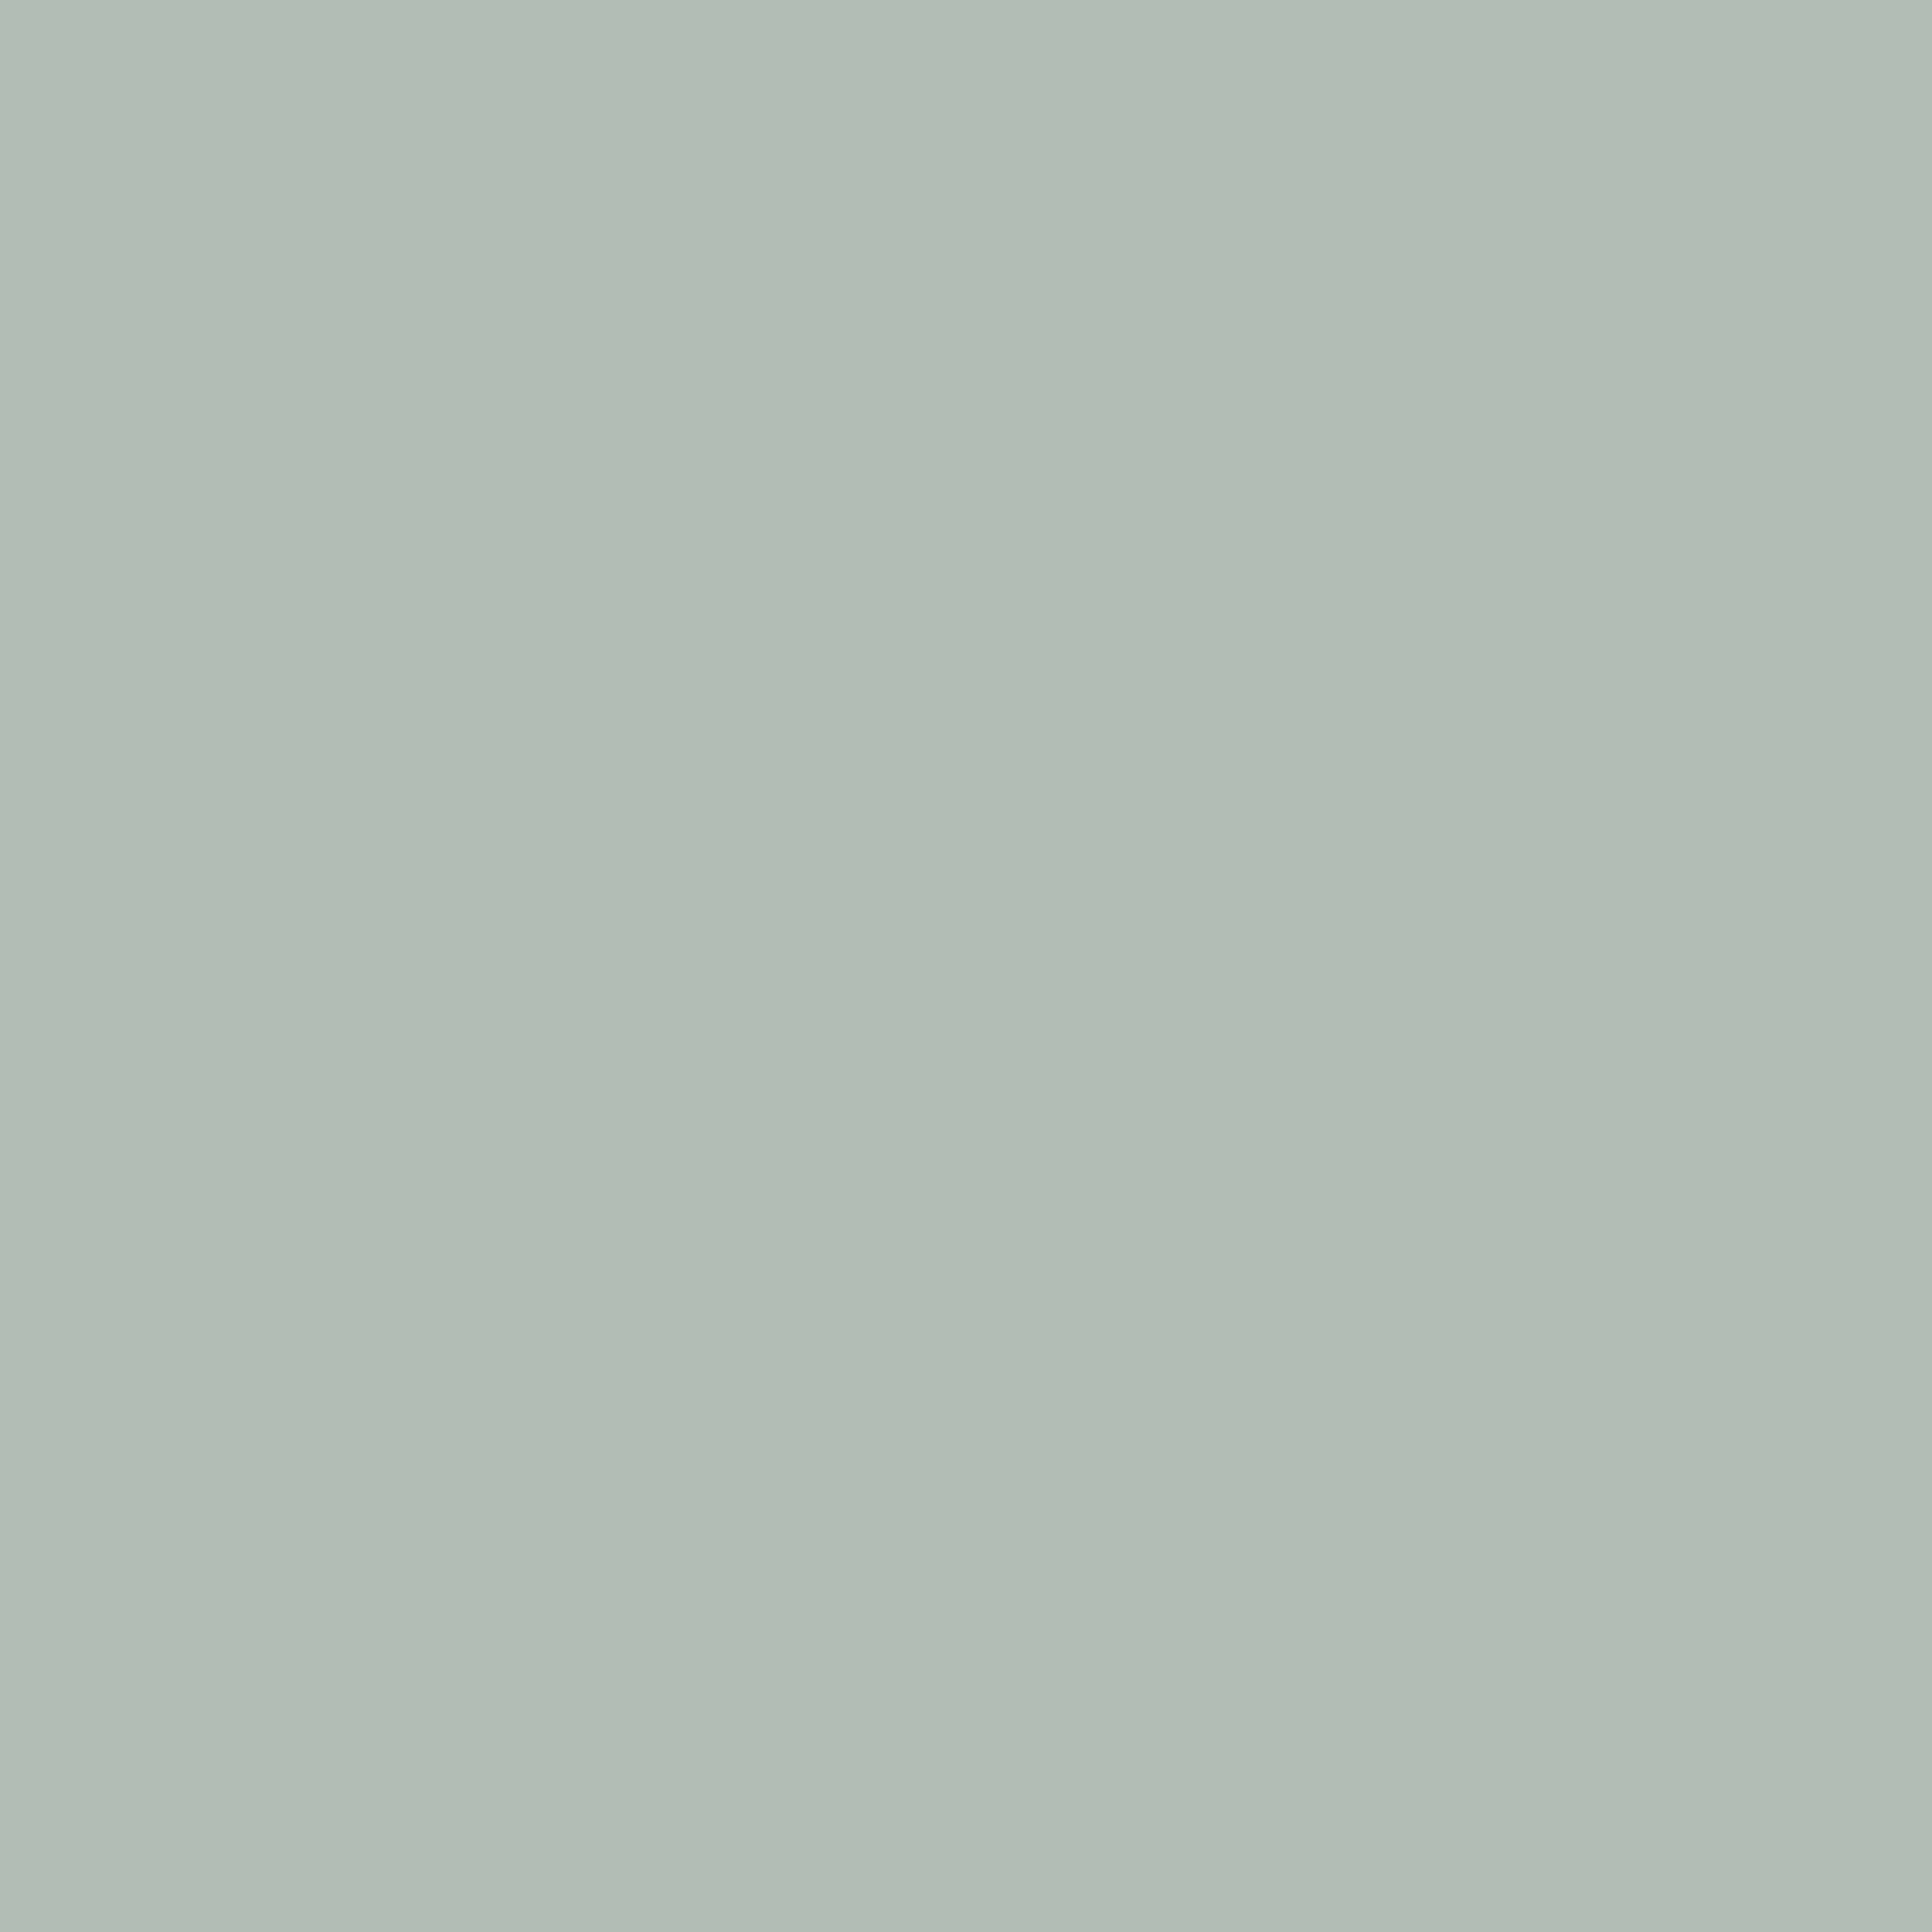 3600x3600 Ash Grey Solid Color Background